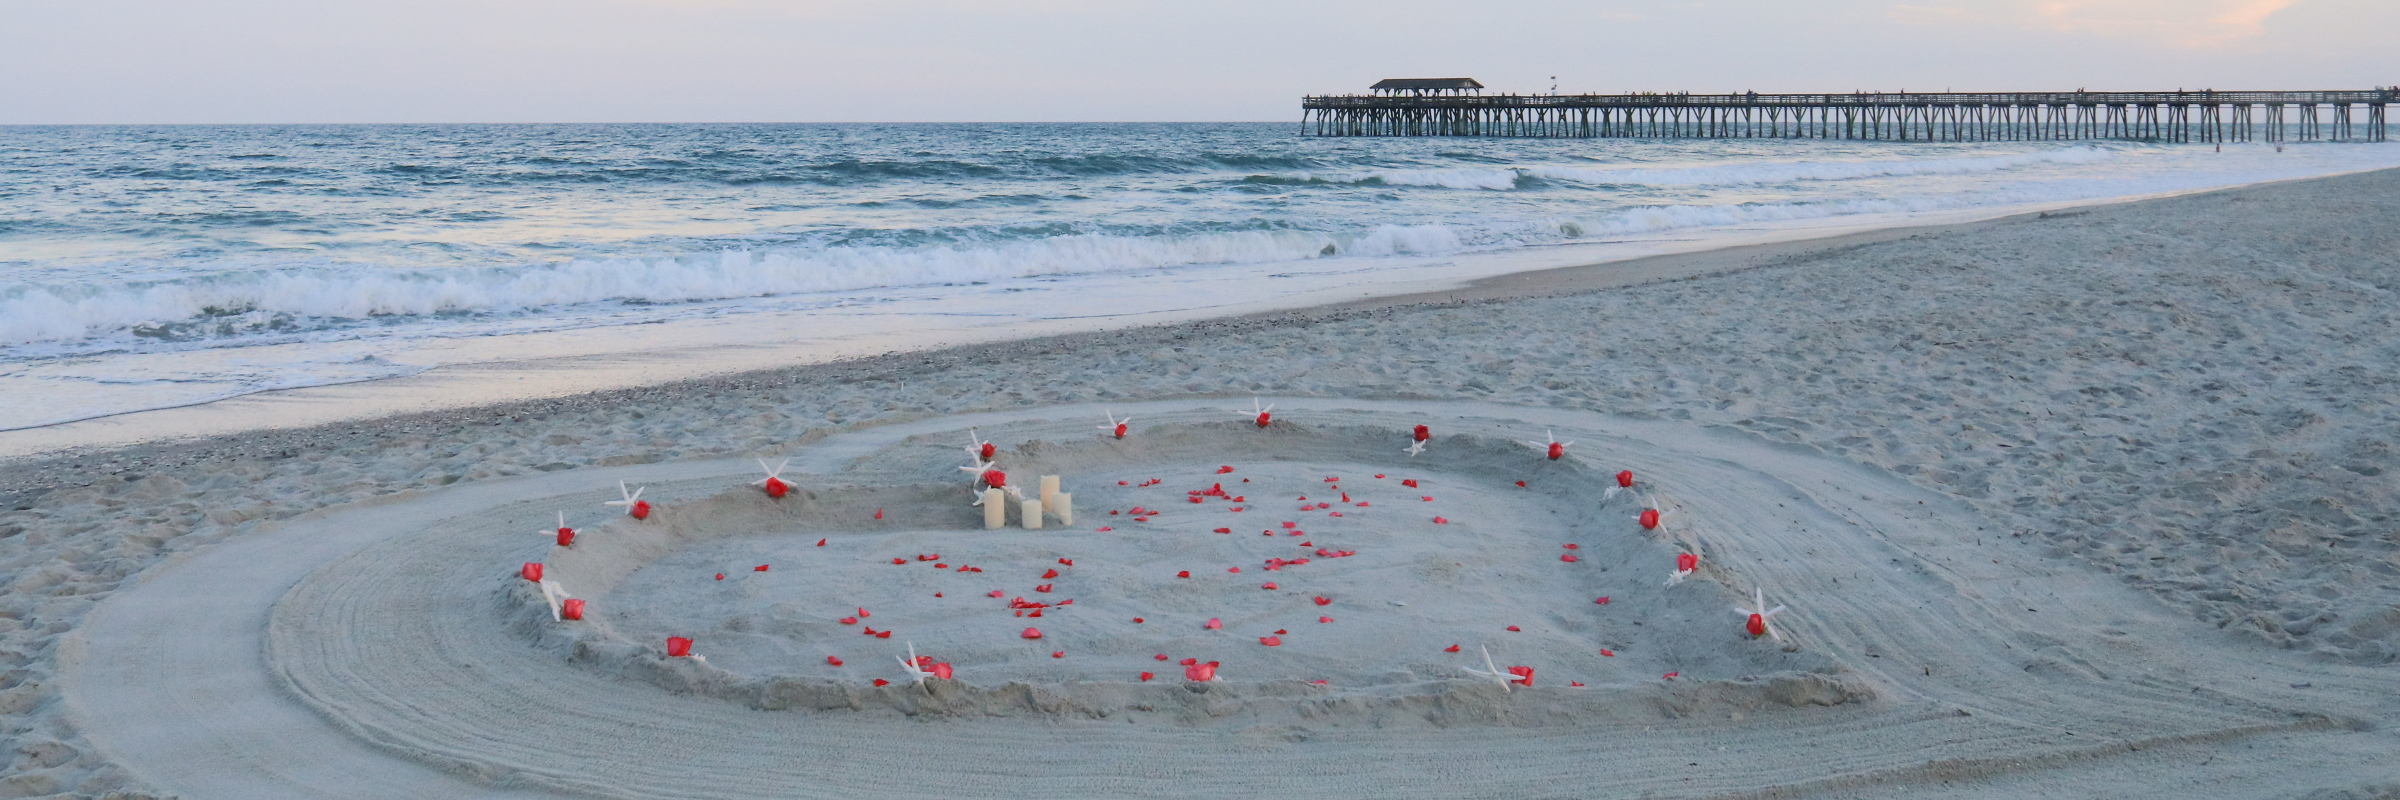 How to Get Married in Myrtle Beach